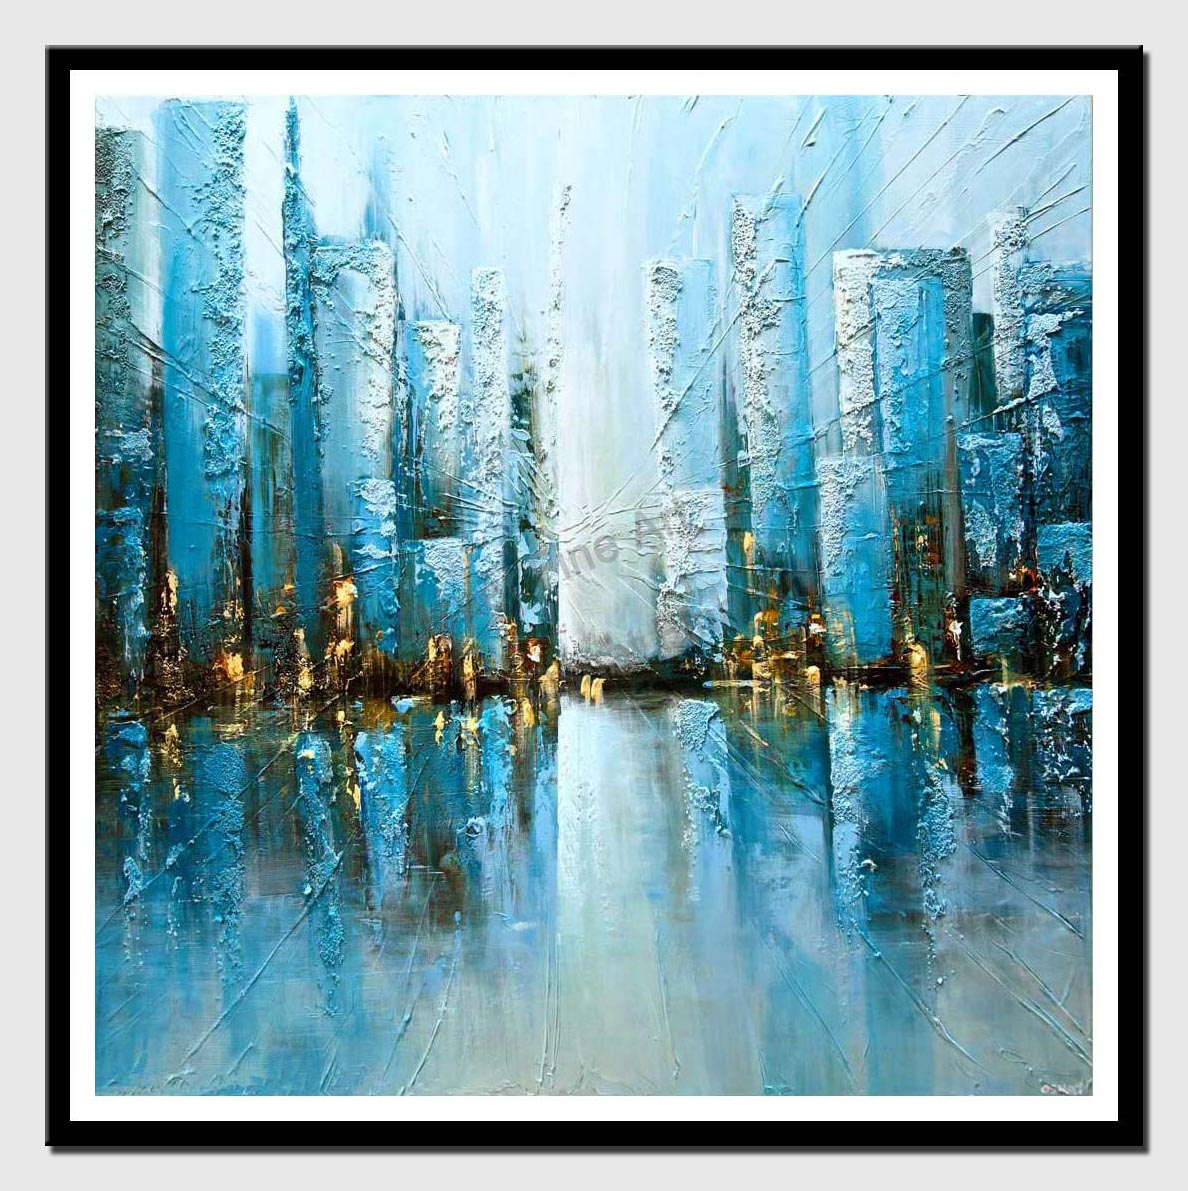 canvas print of blue textured abstract city painting